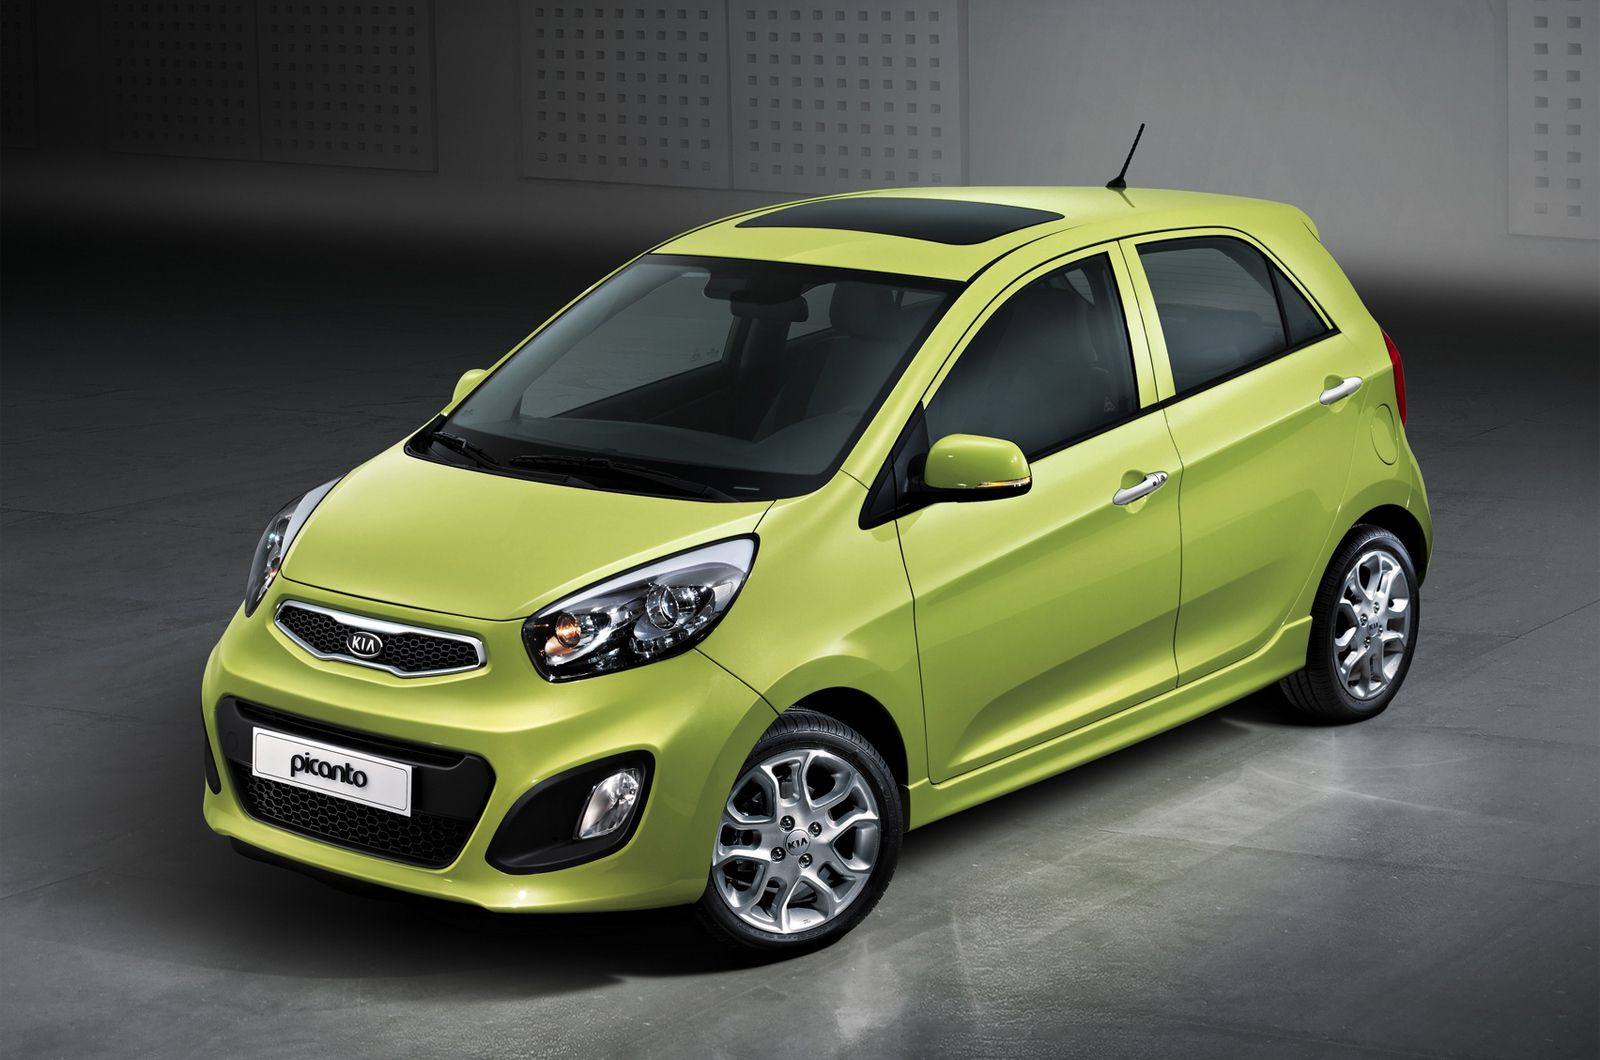 Pin By Cockram Kia On Kia Picanto Kia Picanto City Car Car